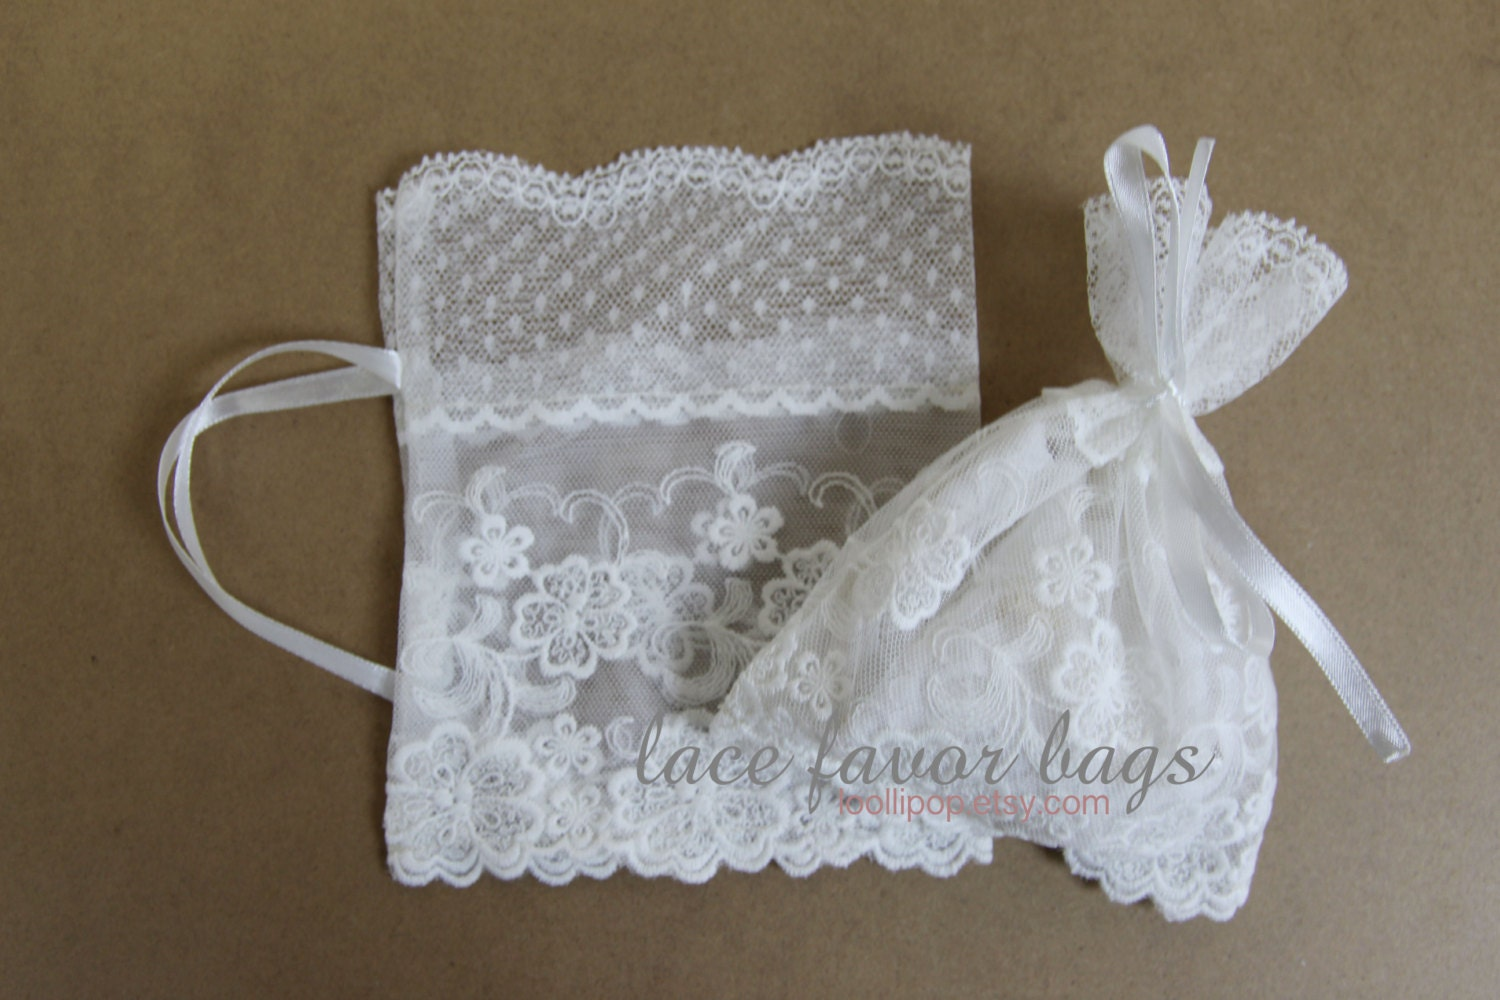 lace favor bags wedding favor bags white lace favor bags vintage lace pouch wedding favor bags set of 10